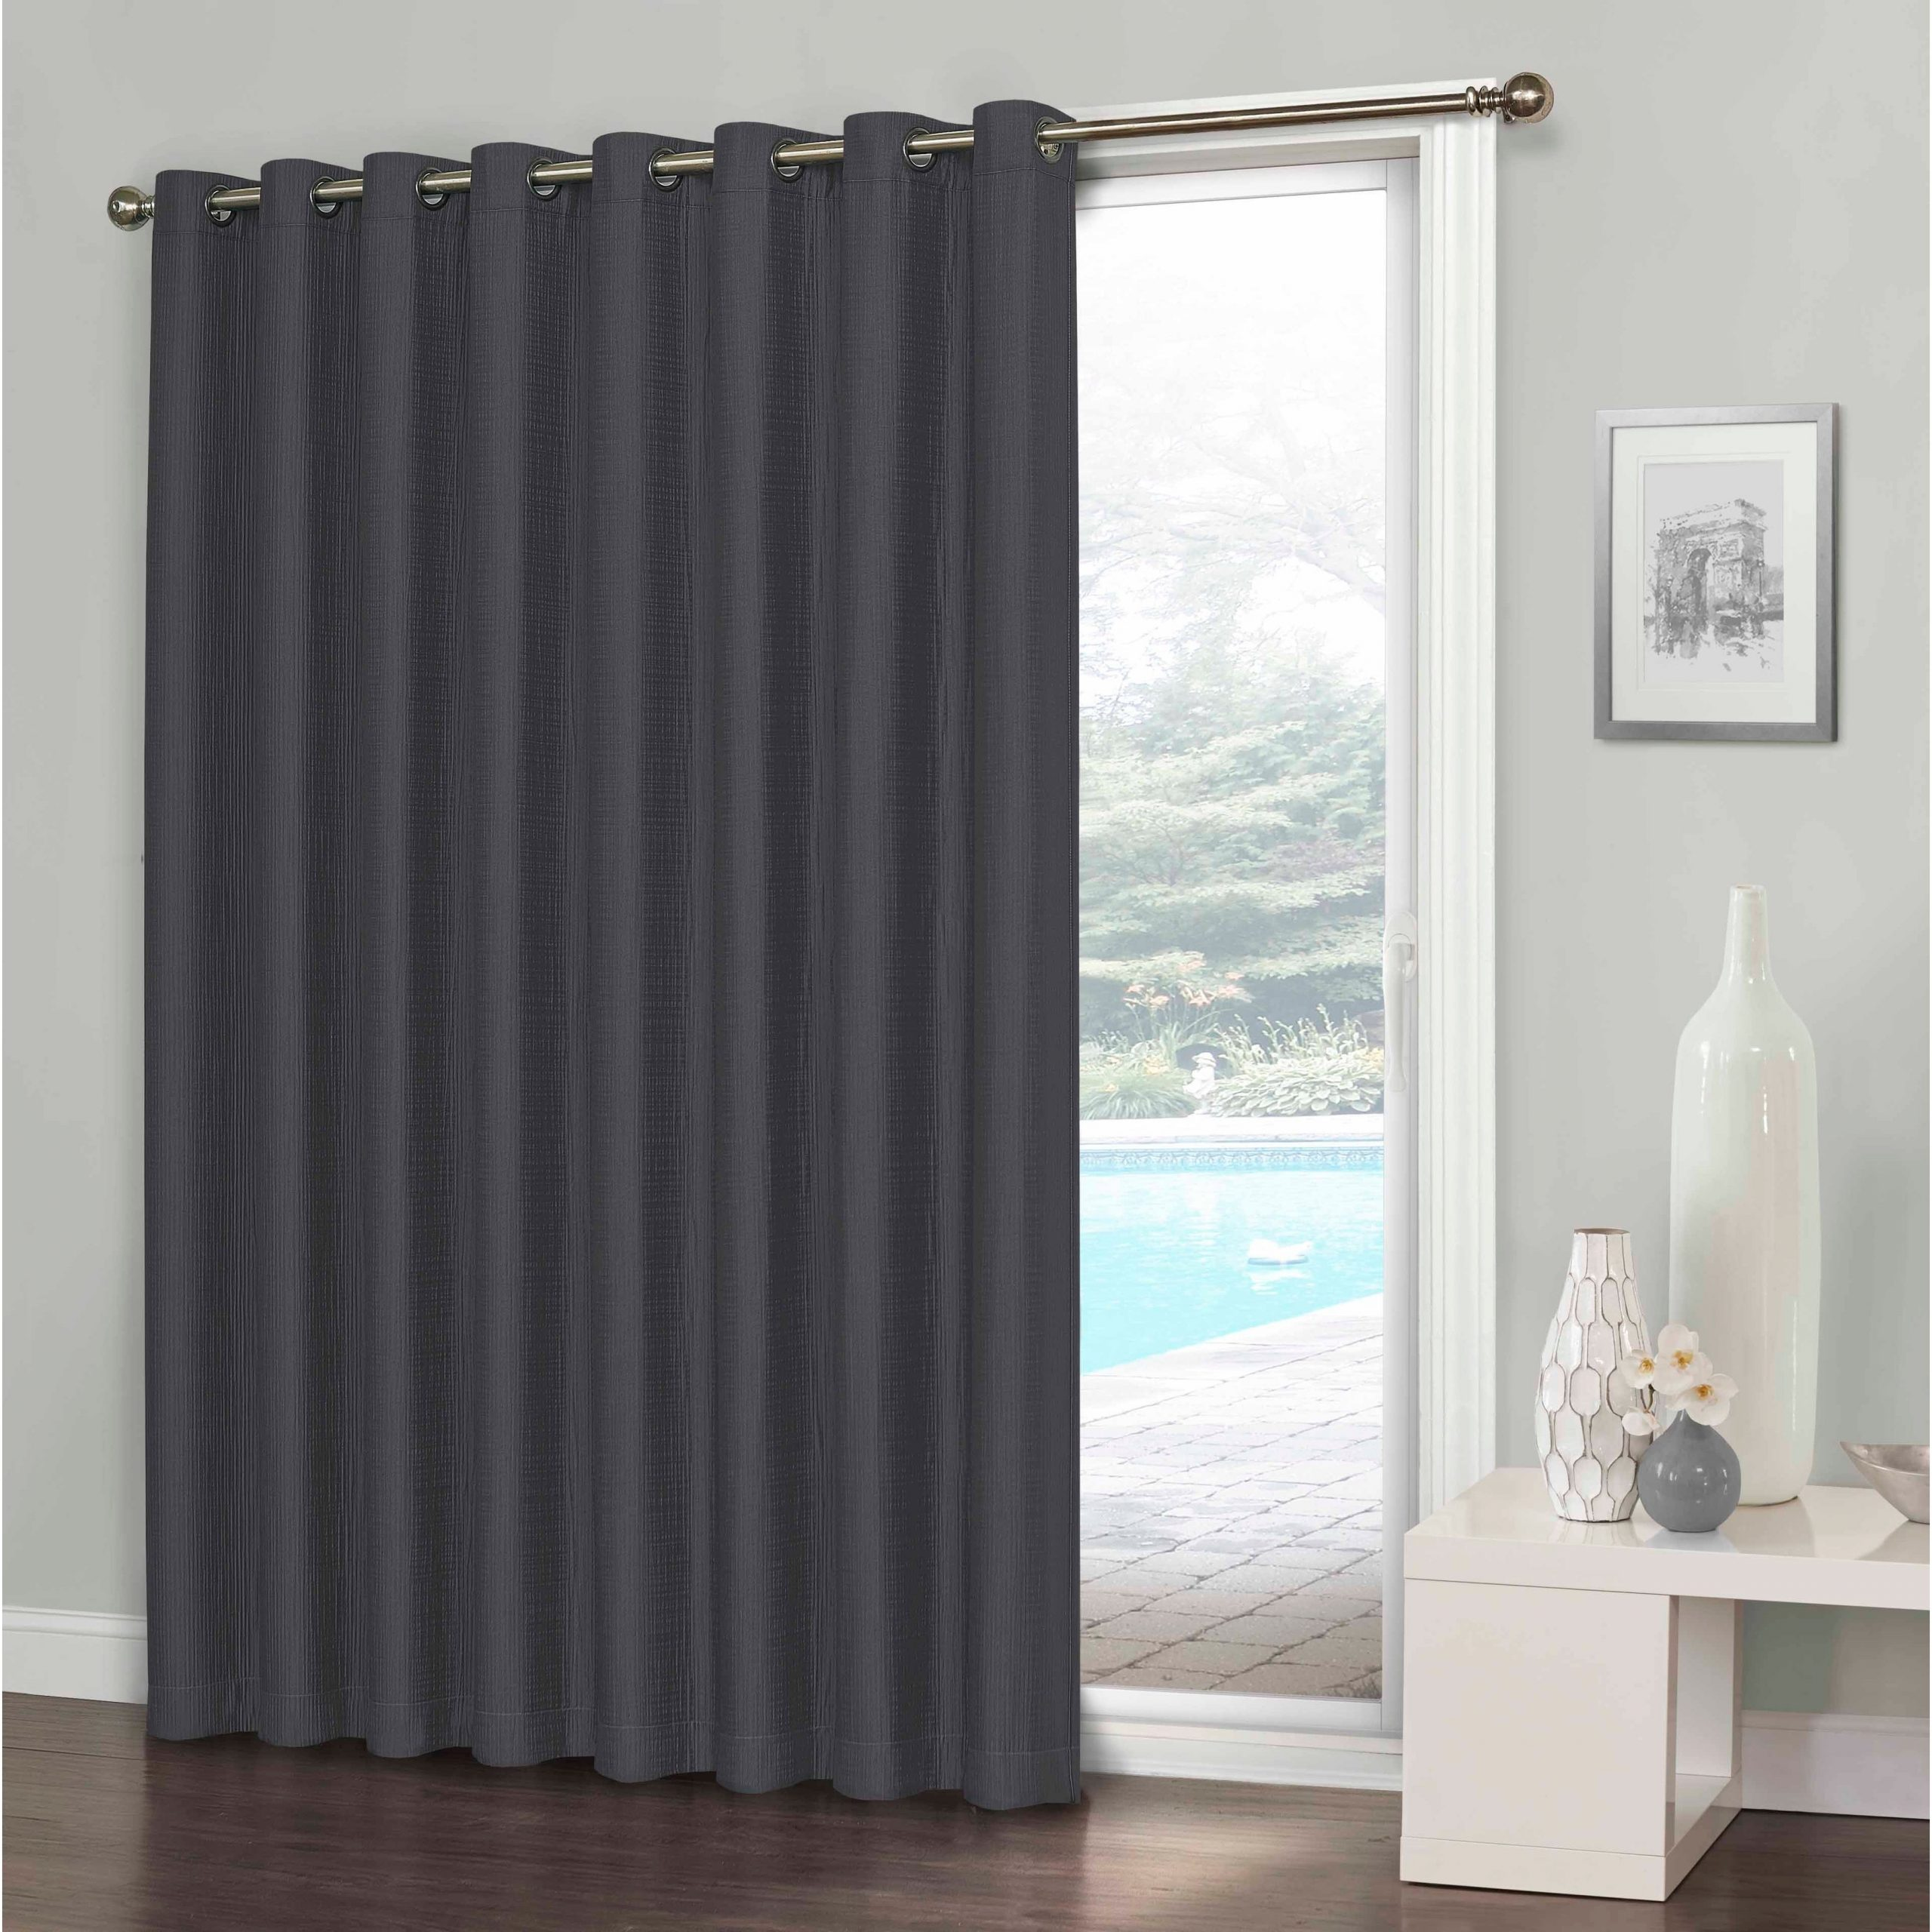 Newest Eclipse Clara Thermaweave Blackout Patio Door Curtain – 100X84 Pertaining To Thermaweave Blackout Curtains (View 9 of 20)